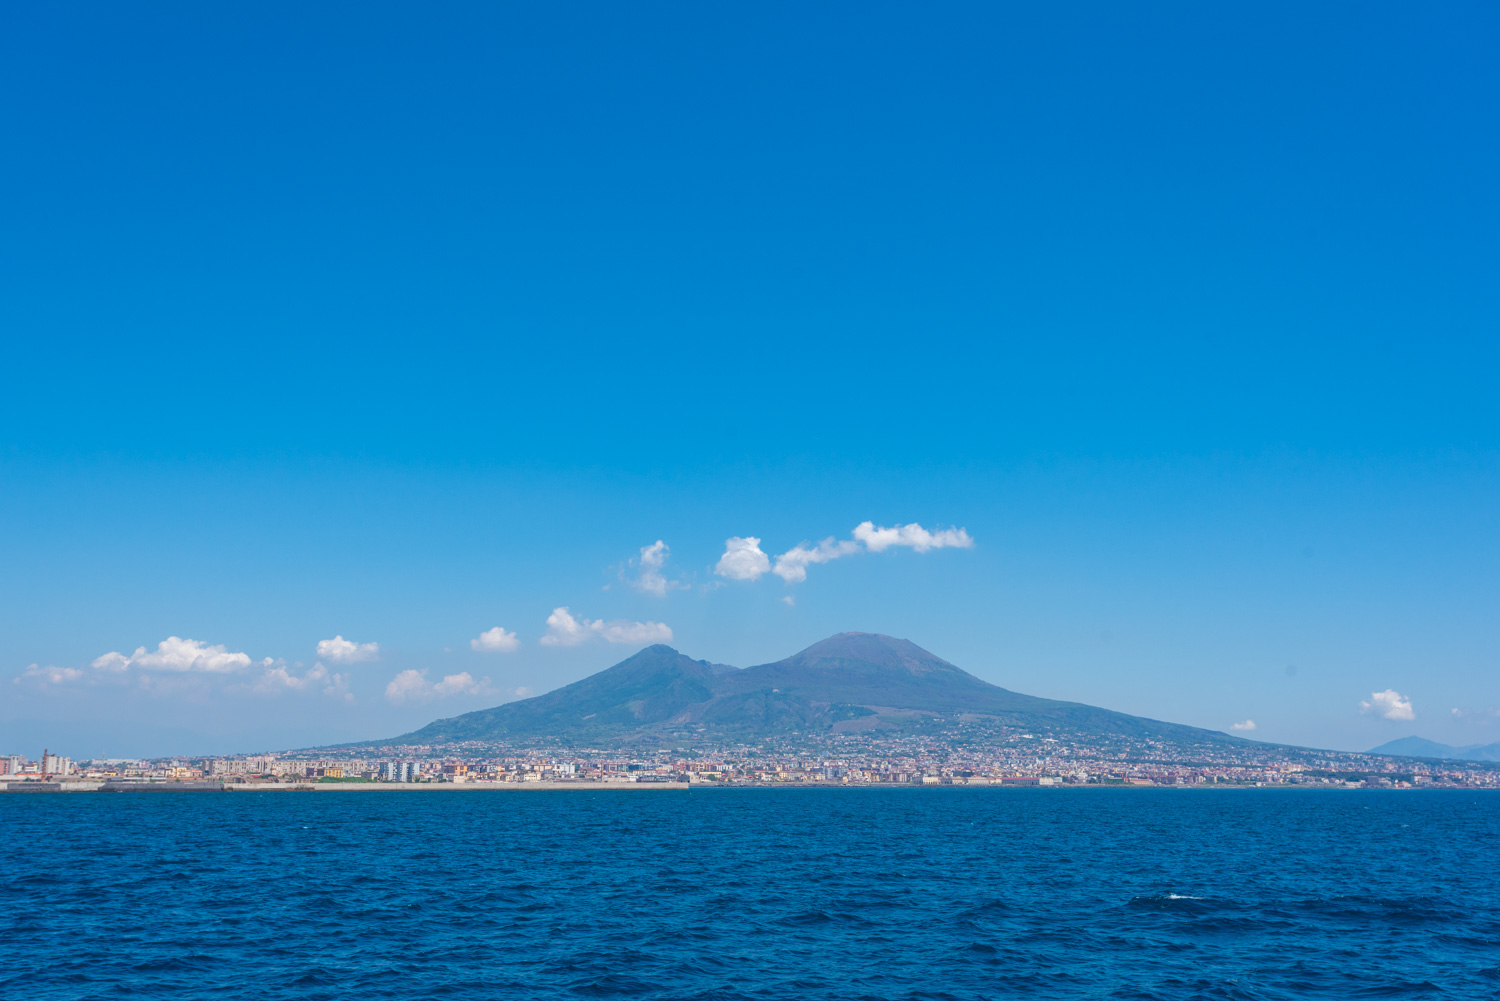 View of Vesuvius from the ferry to Capri.